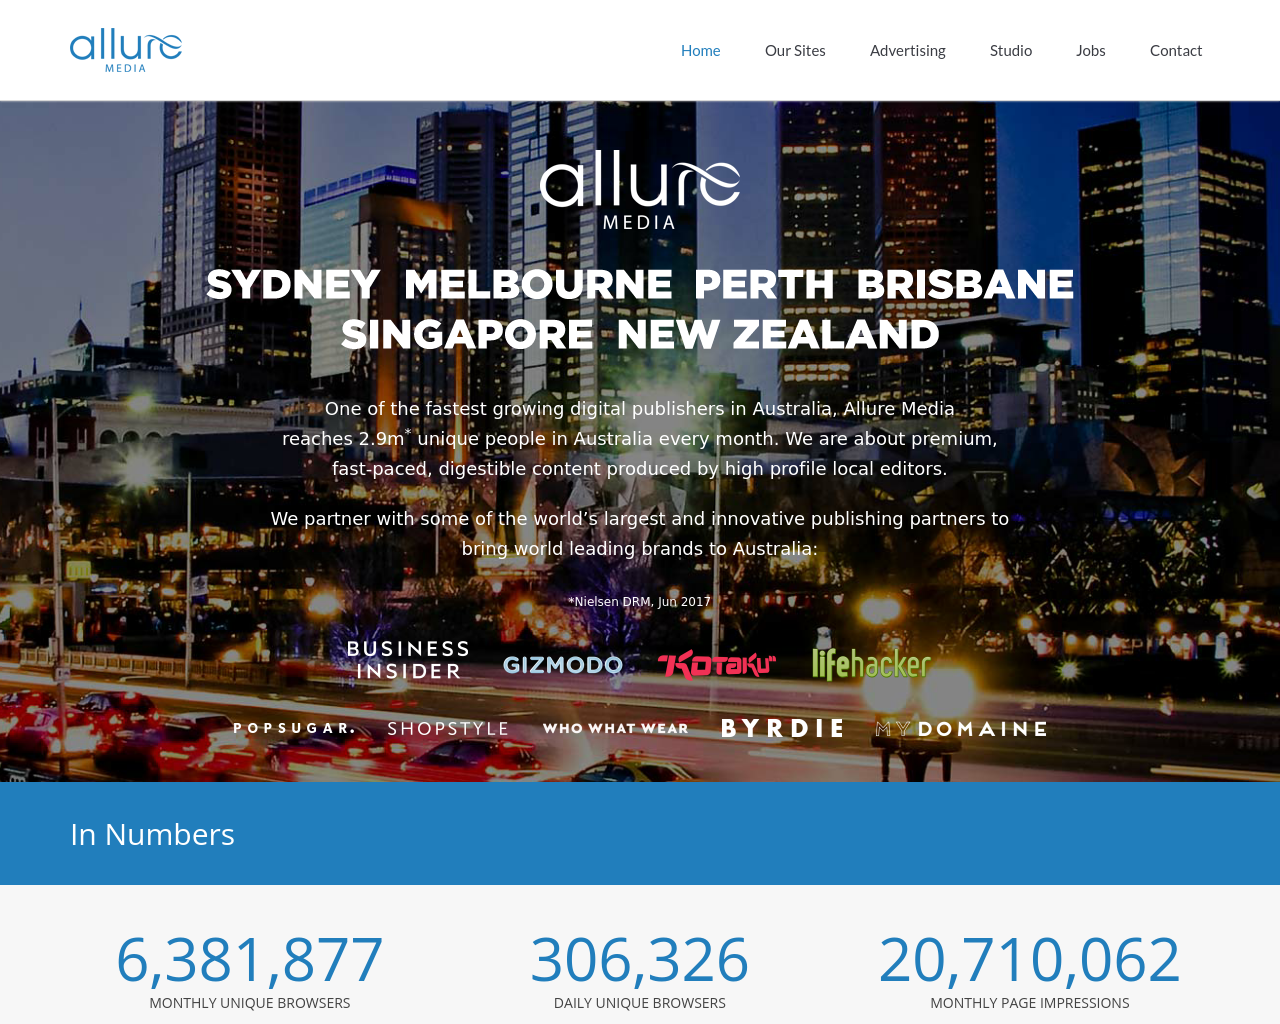 Allure-Media-Advertising-Reviews-Pricing